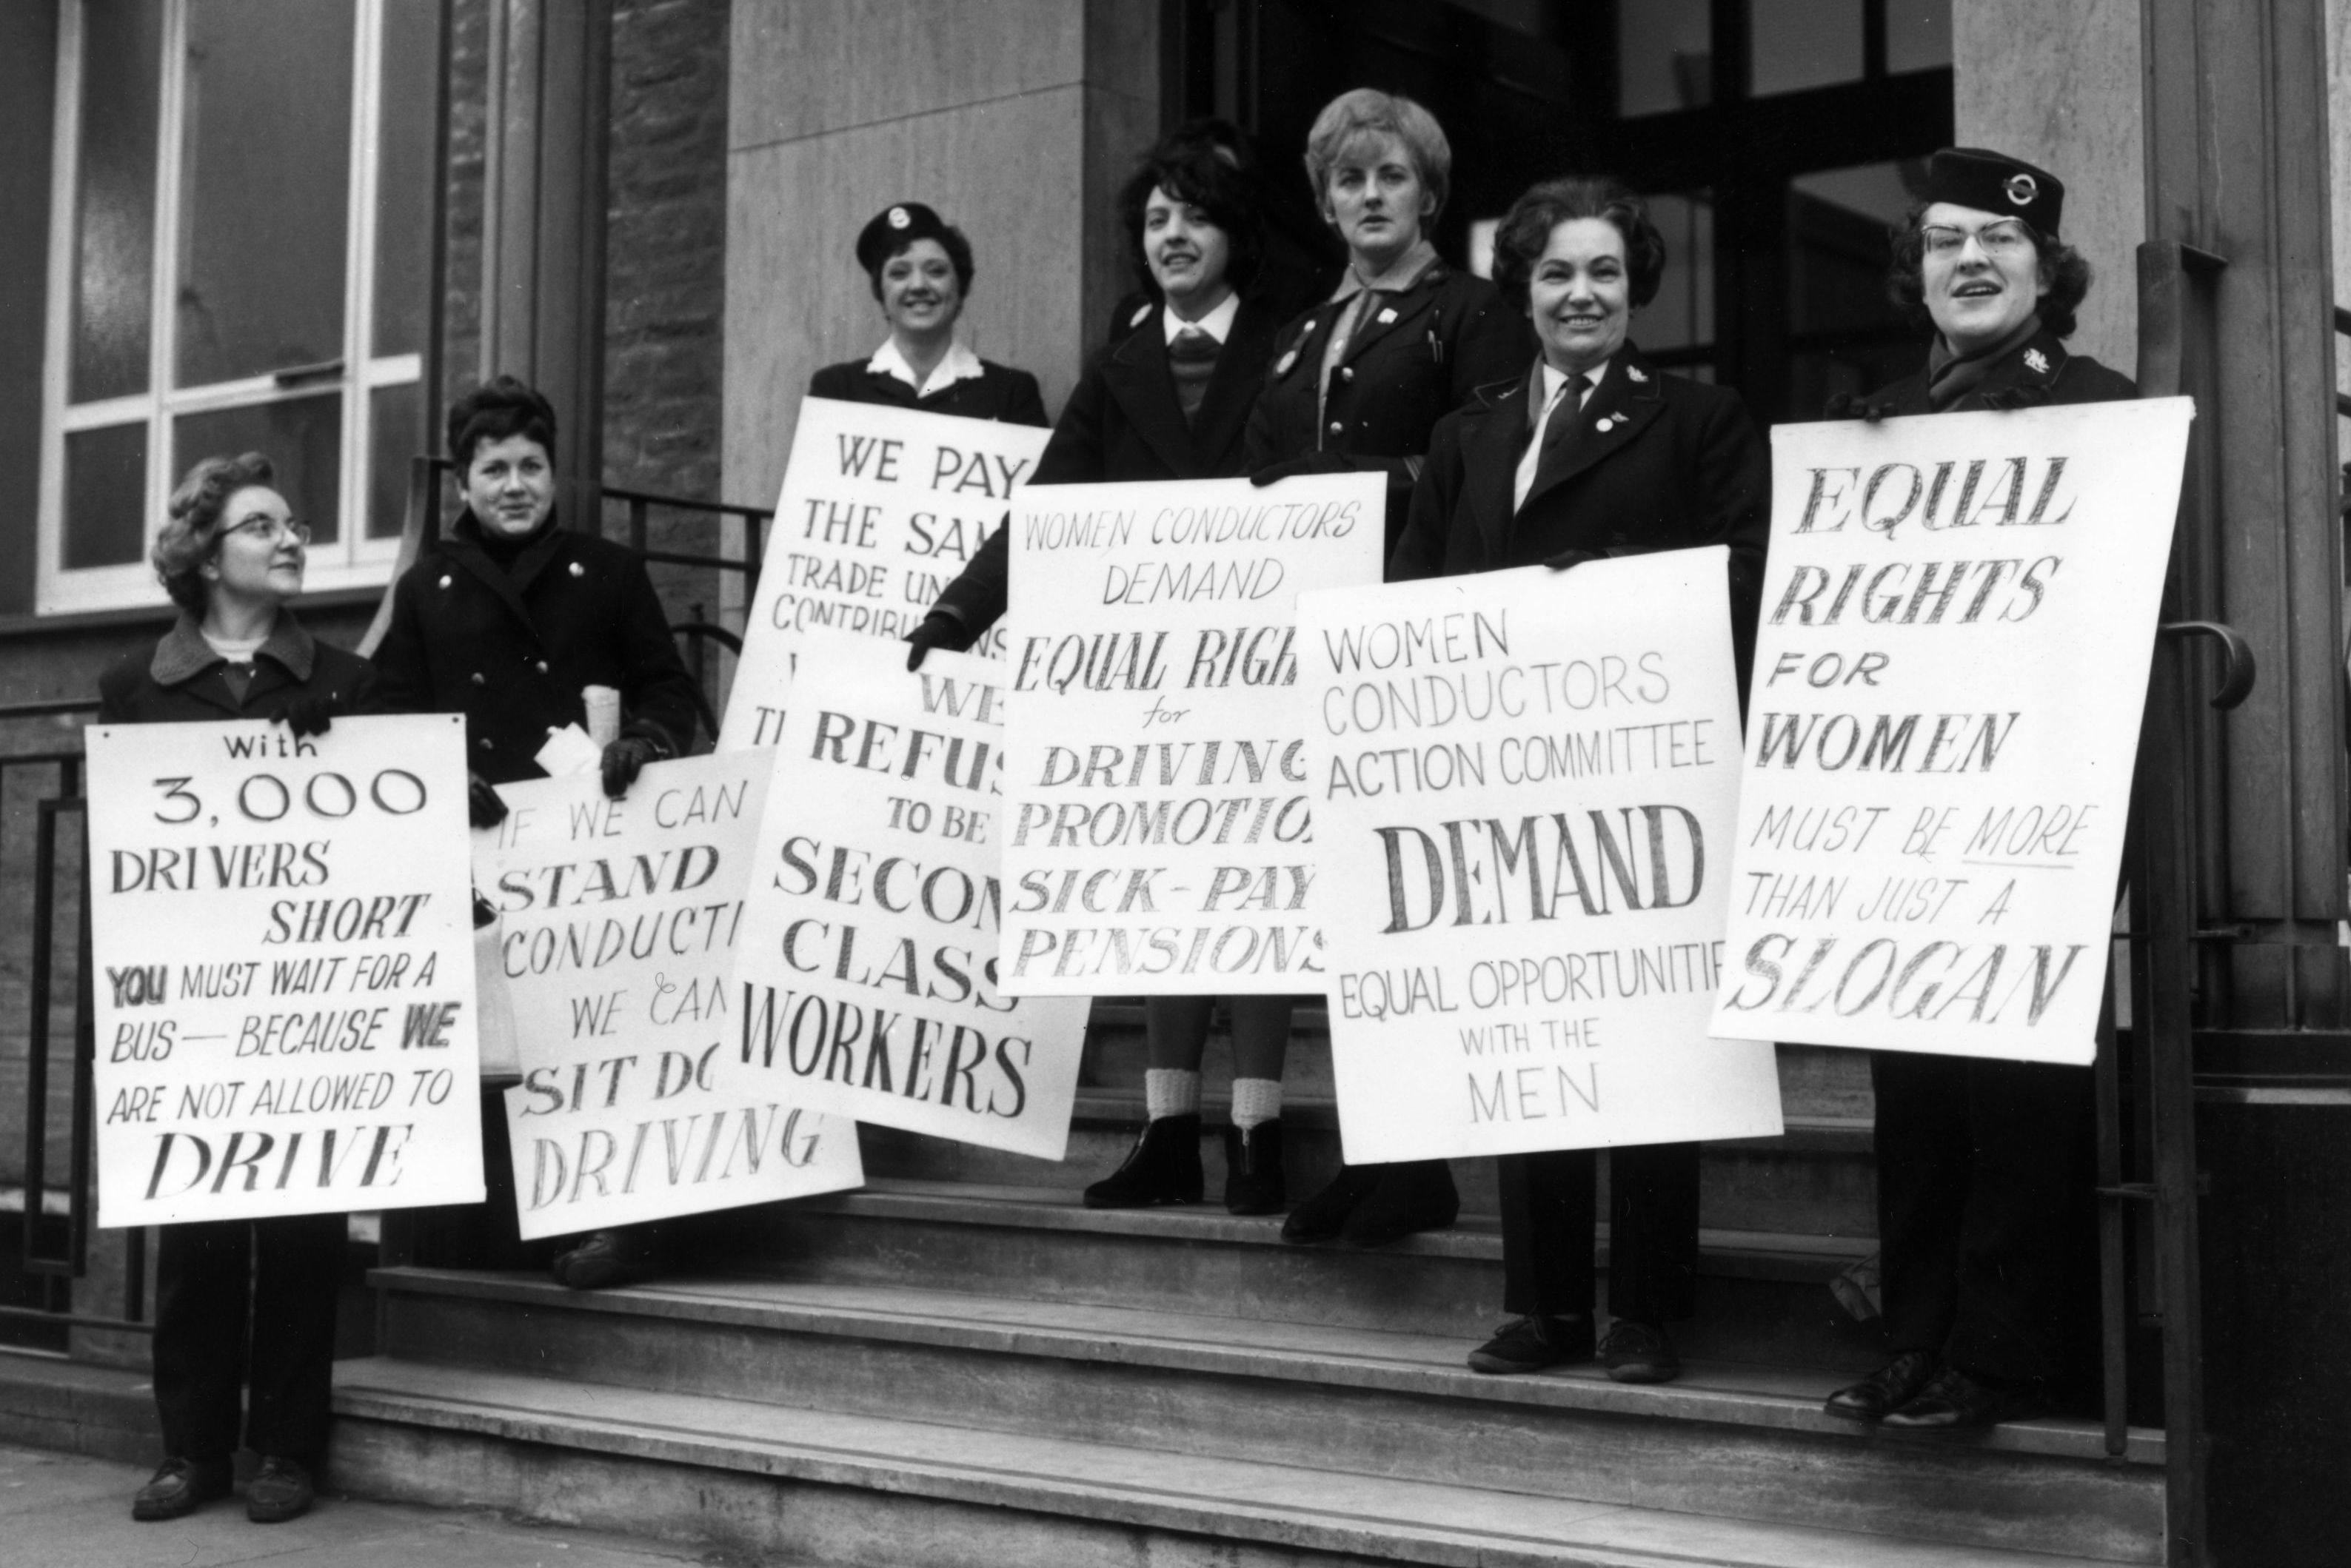 canadian women s rights roles Women's roles were greatly changed in the 1950s, with the men coming back from war and taking their jobs back women had, during world war ii, taken men's jobs while they had been away at war after the war, many women wanted to keep their jobs.